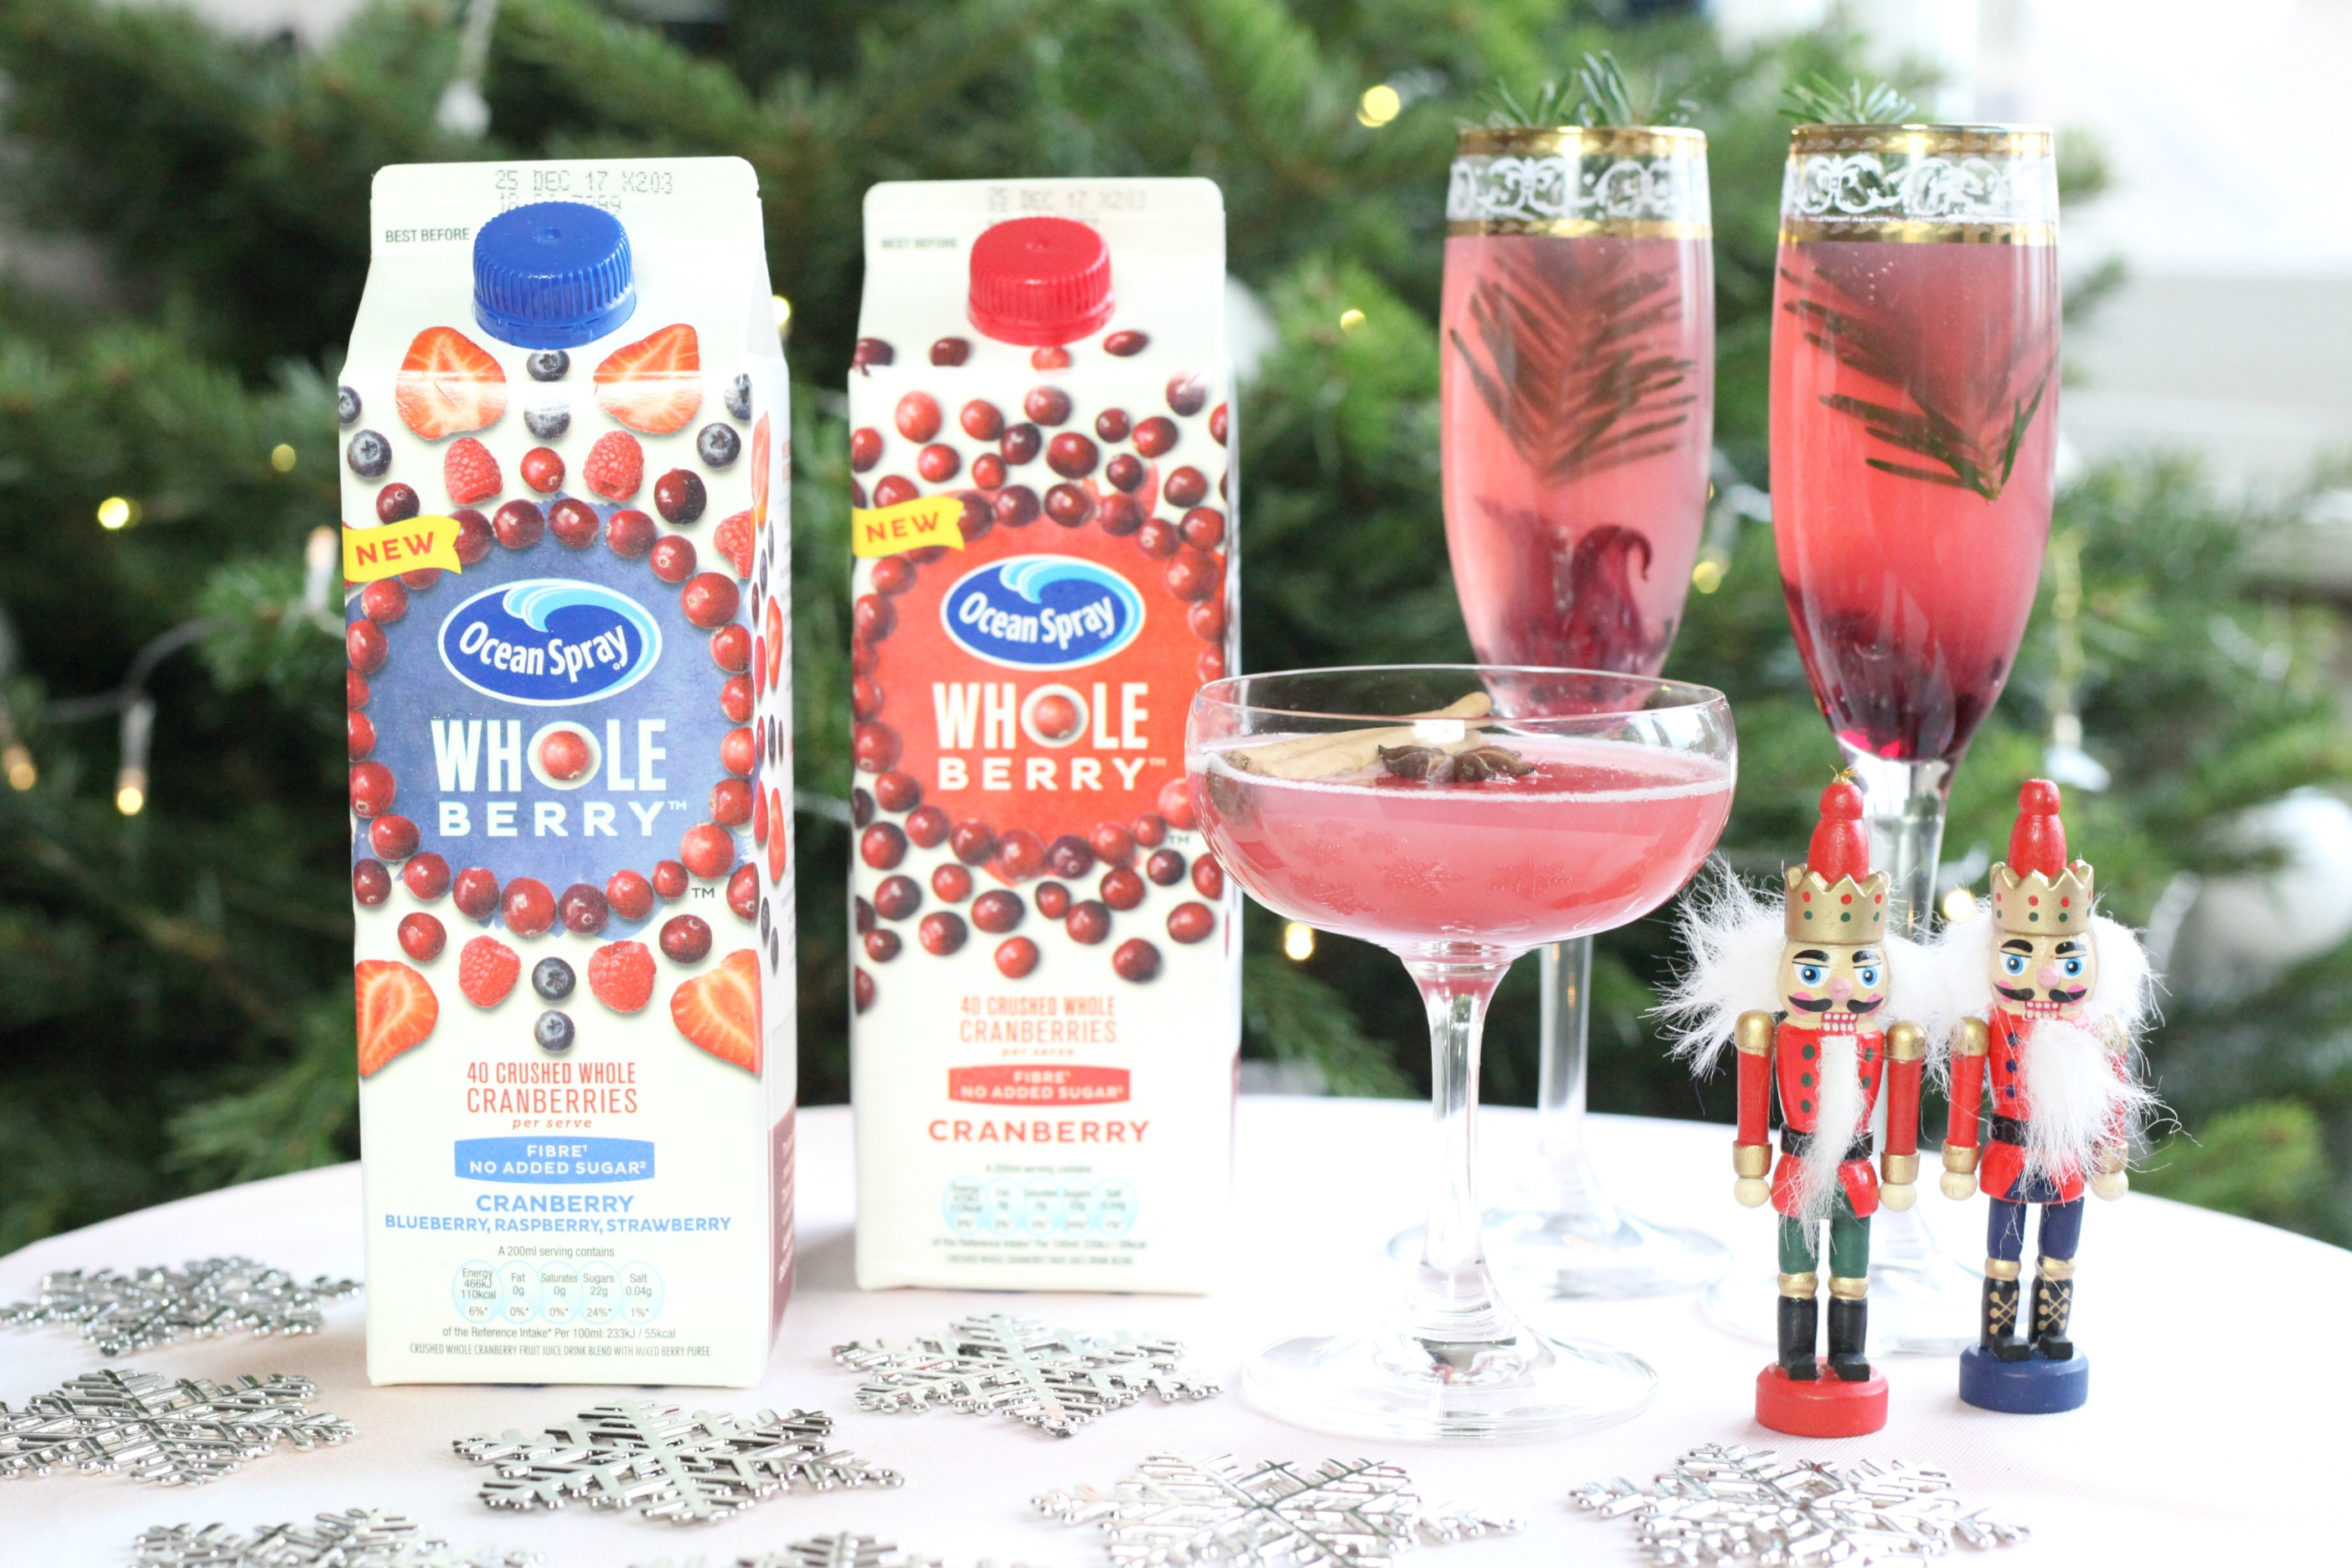 Festive Christmas cocktails using new Ocean Spray Wholeberry